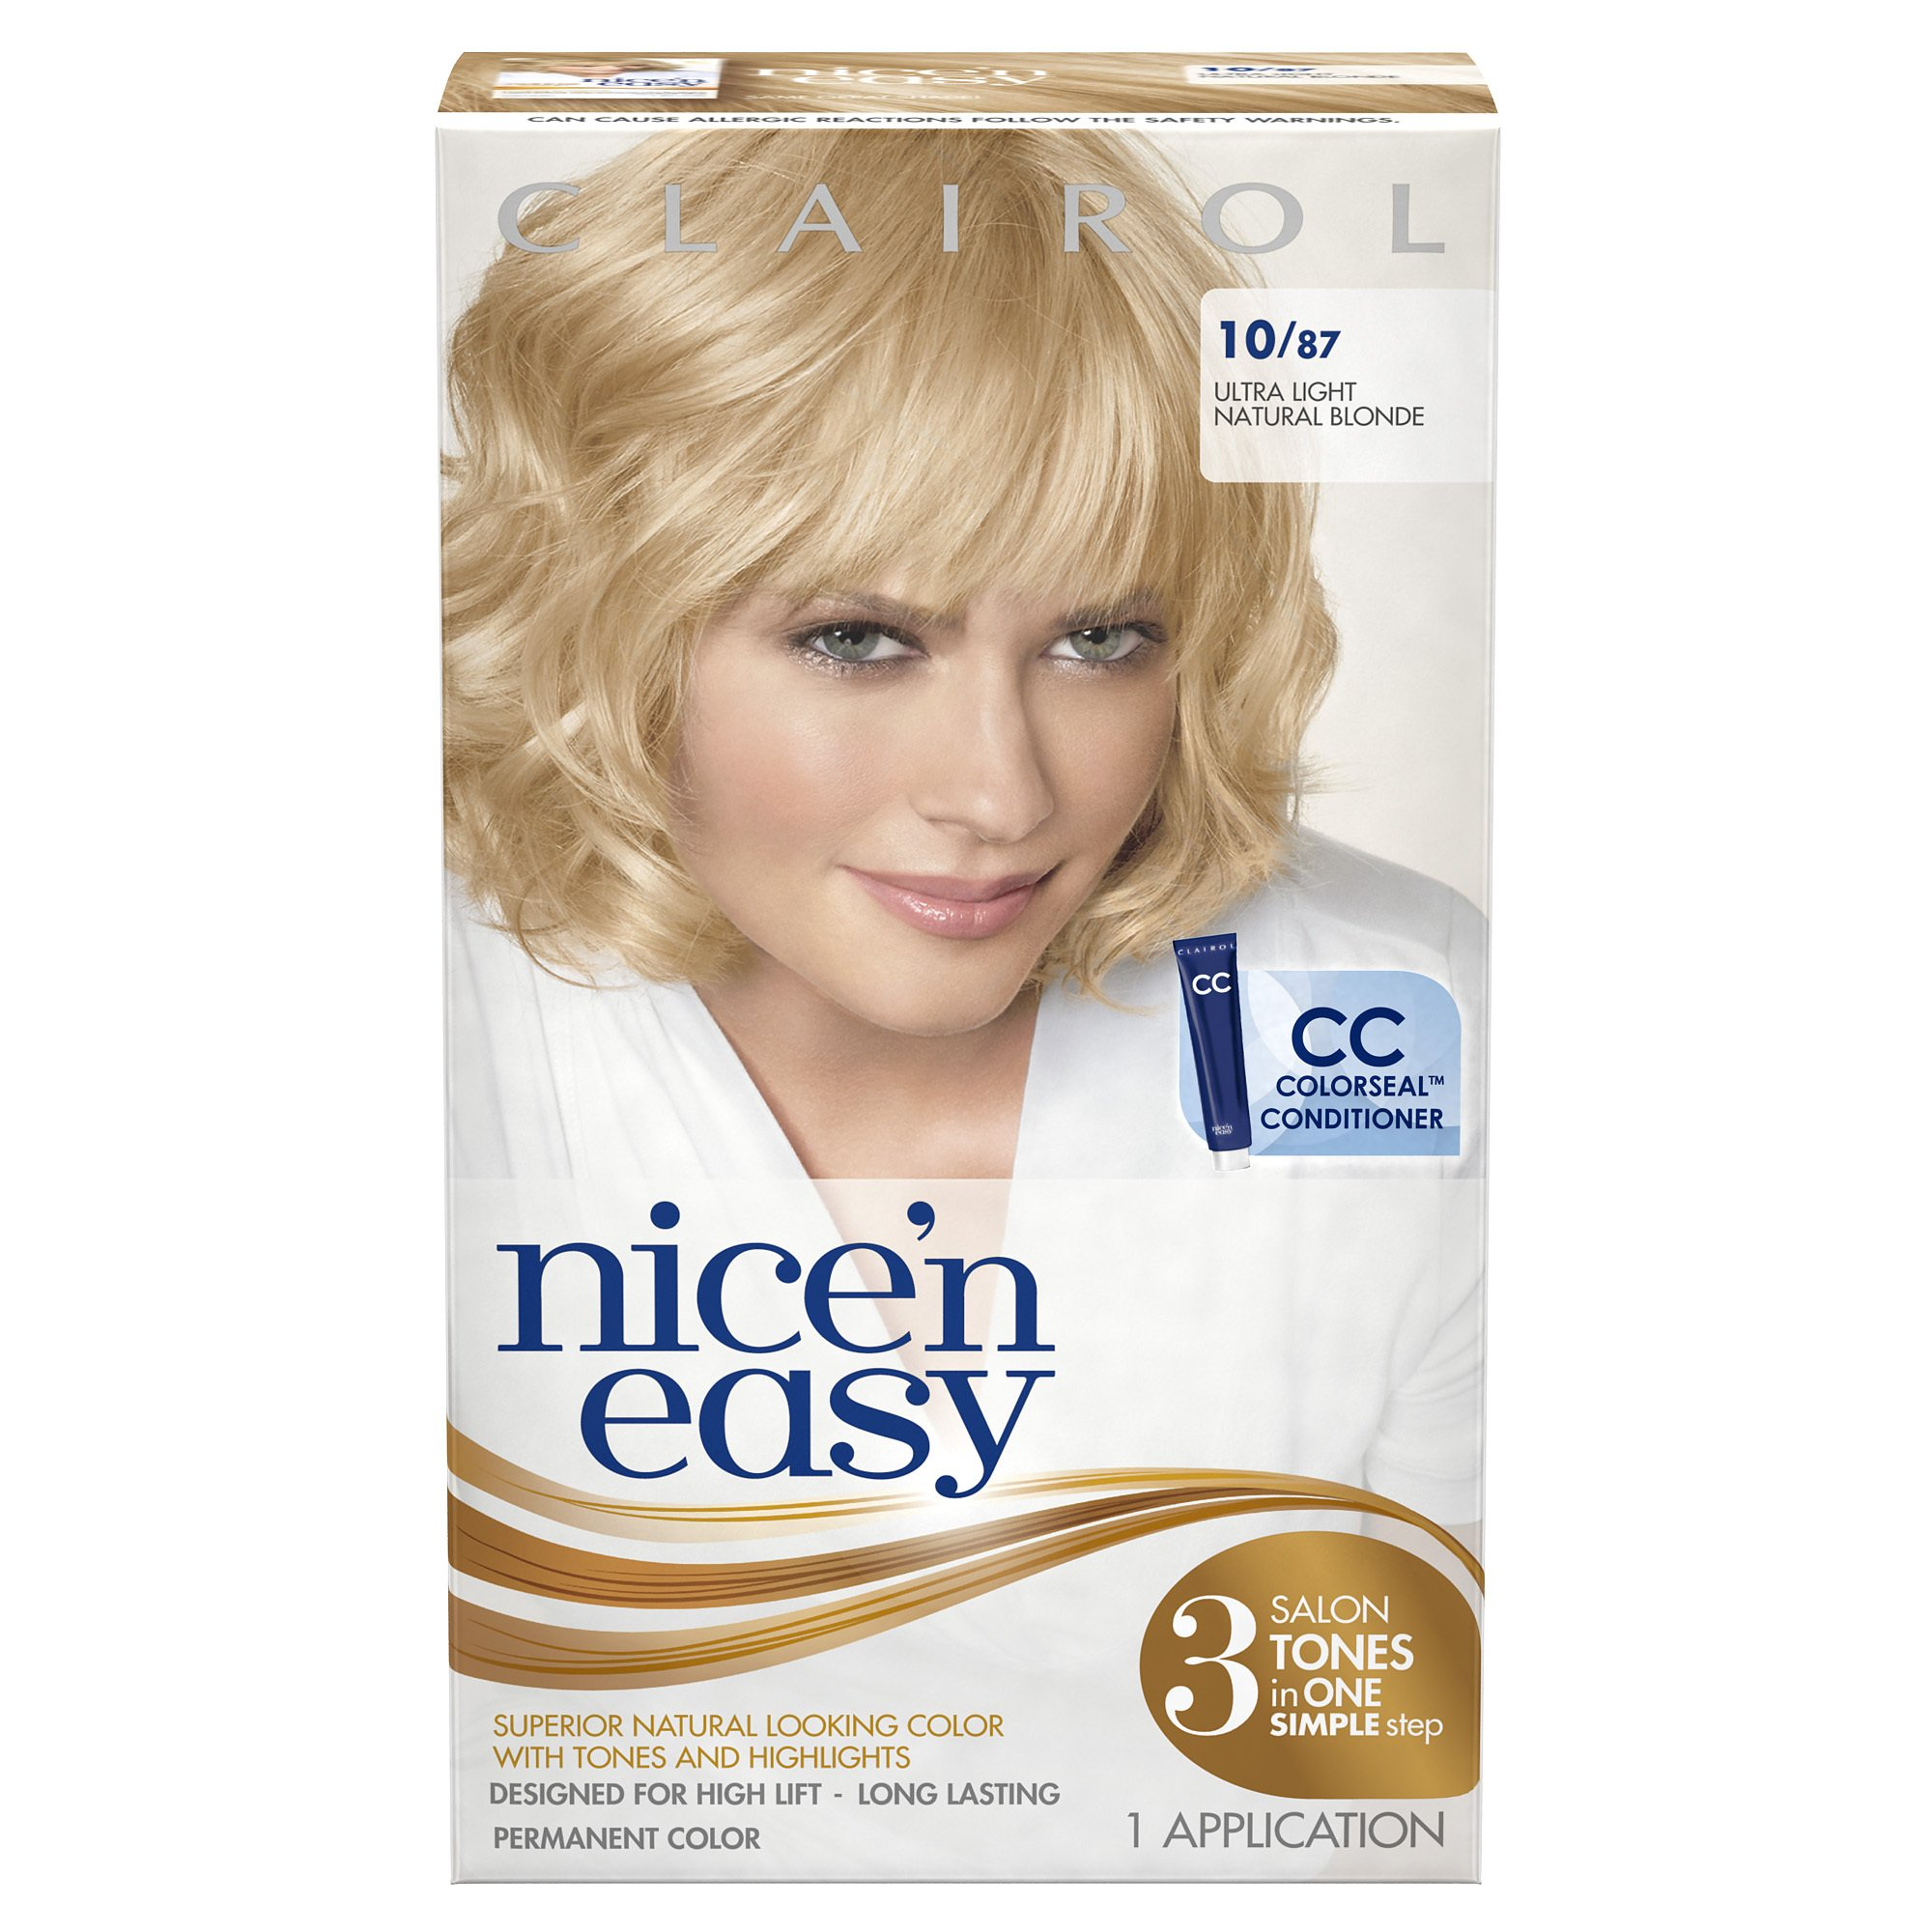 Clairol Blonde Hair Color